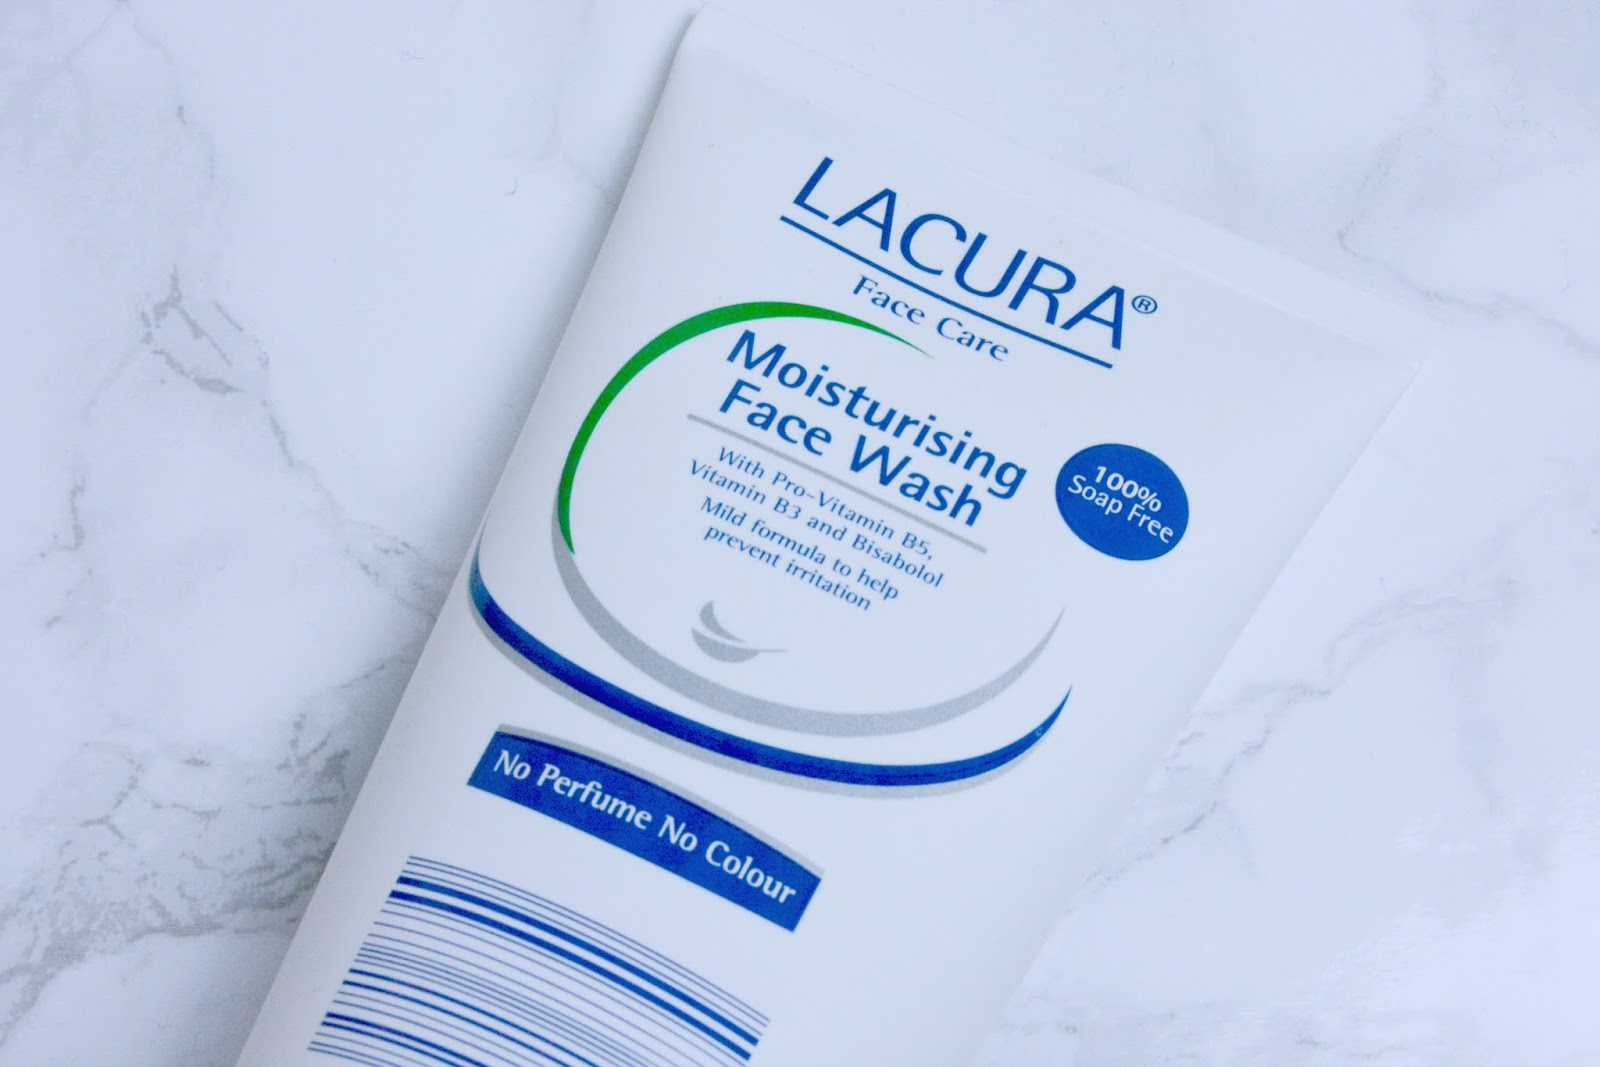 lacura, aldi, face wash, skincare, review, superstore, shopping, beauty, cleanser